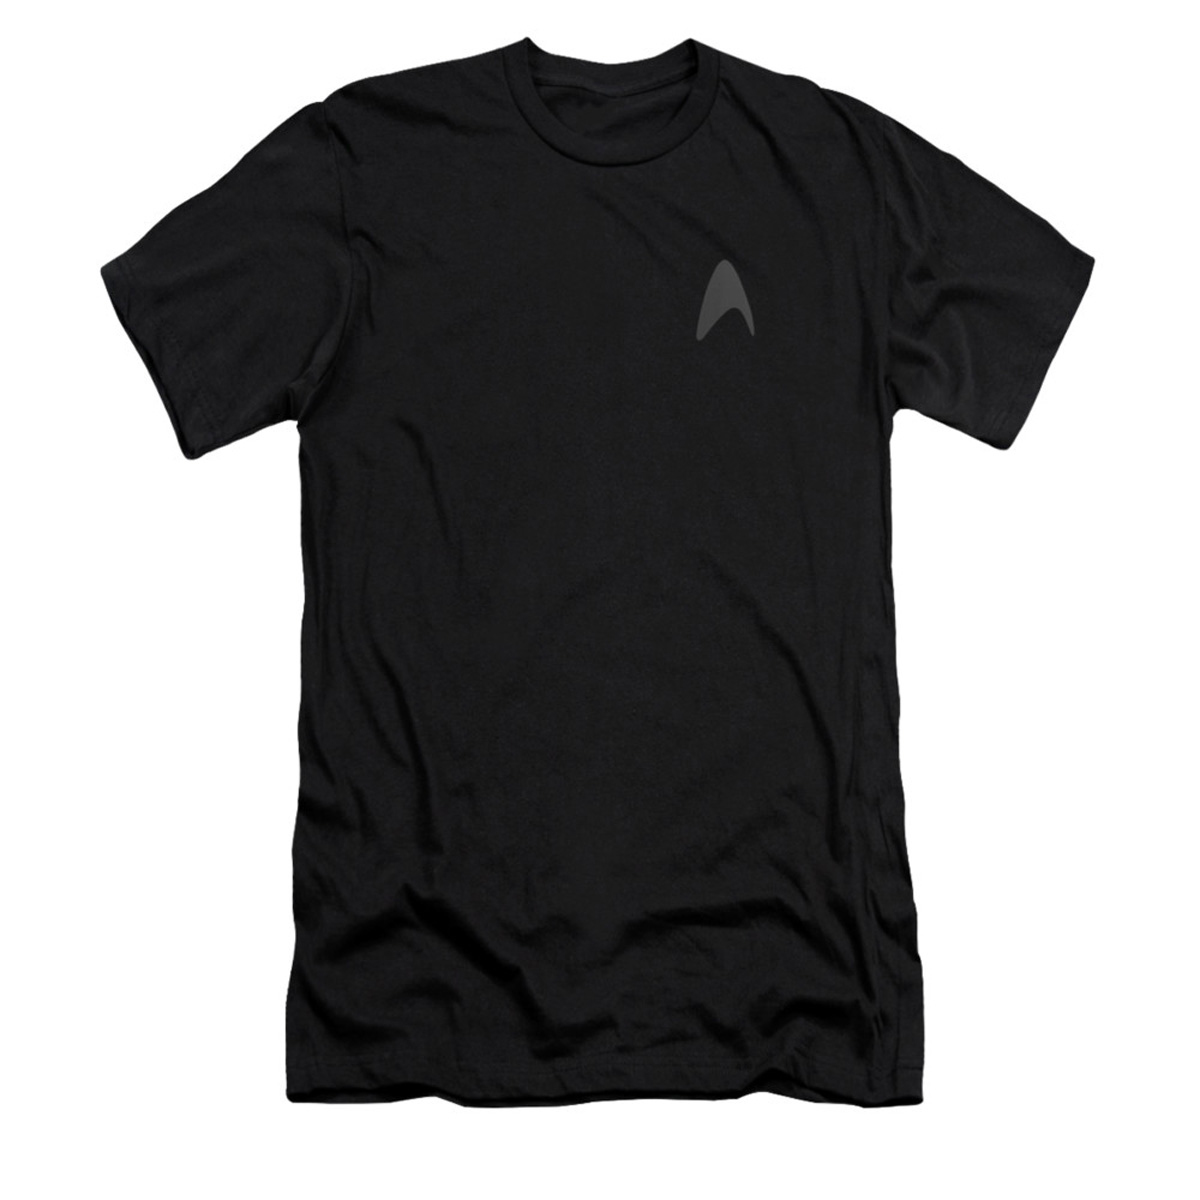 Star Trek Black Command T-Shirt